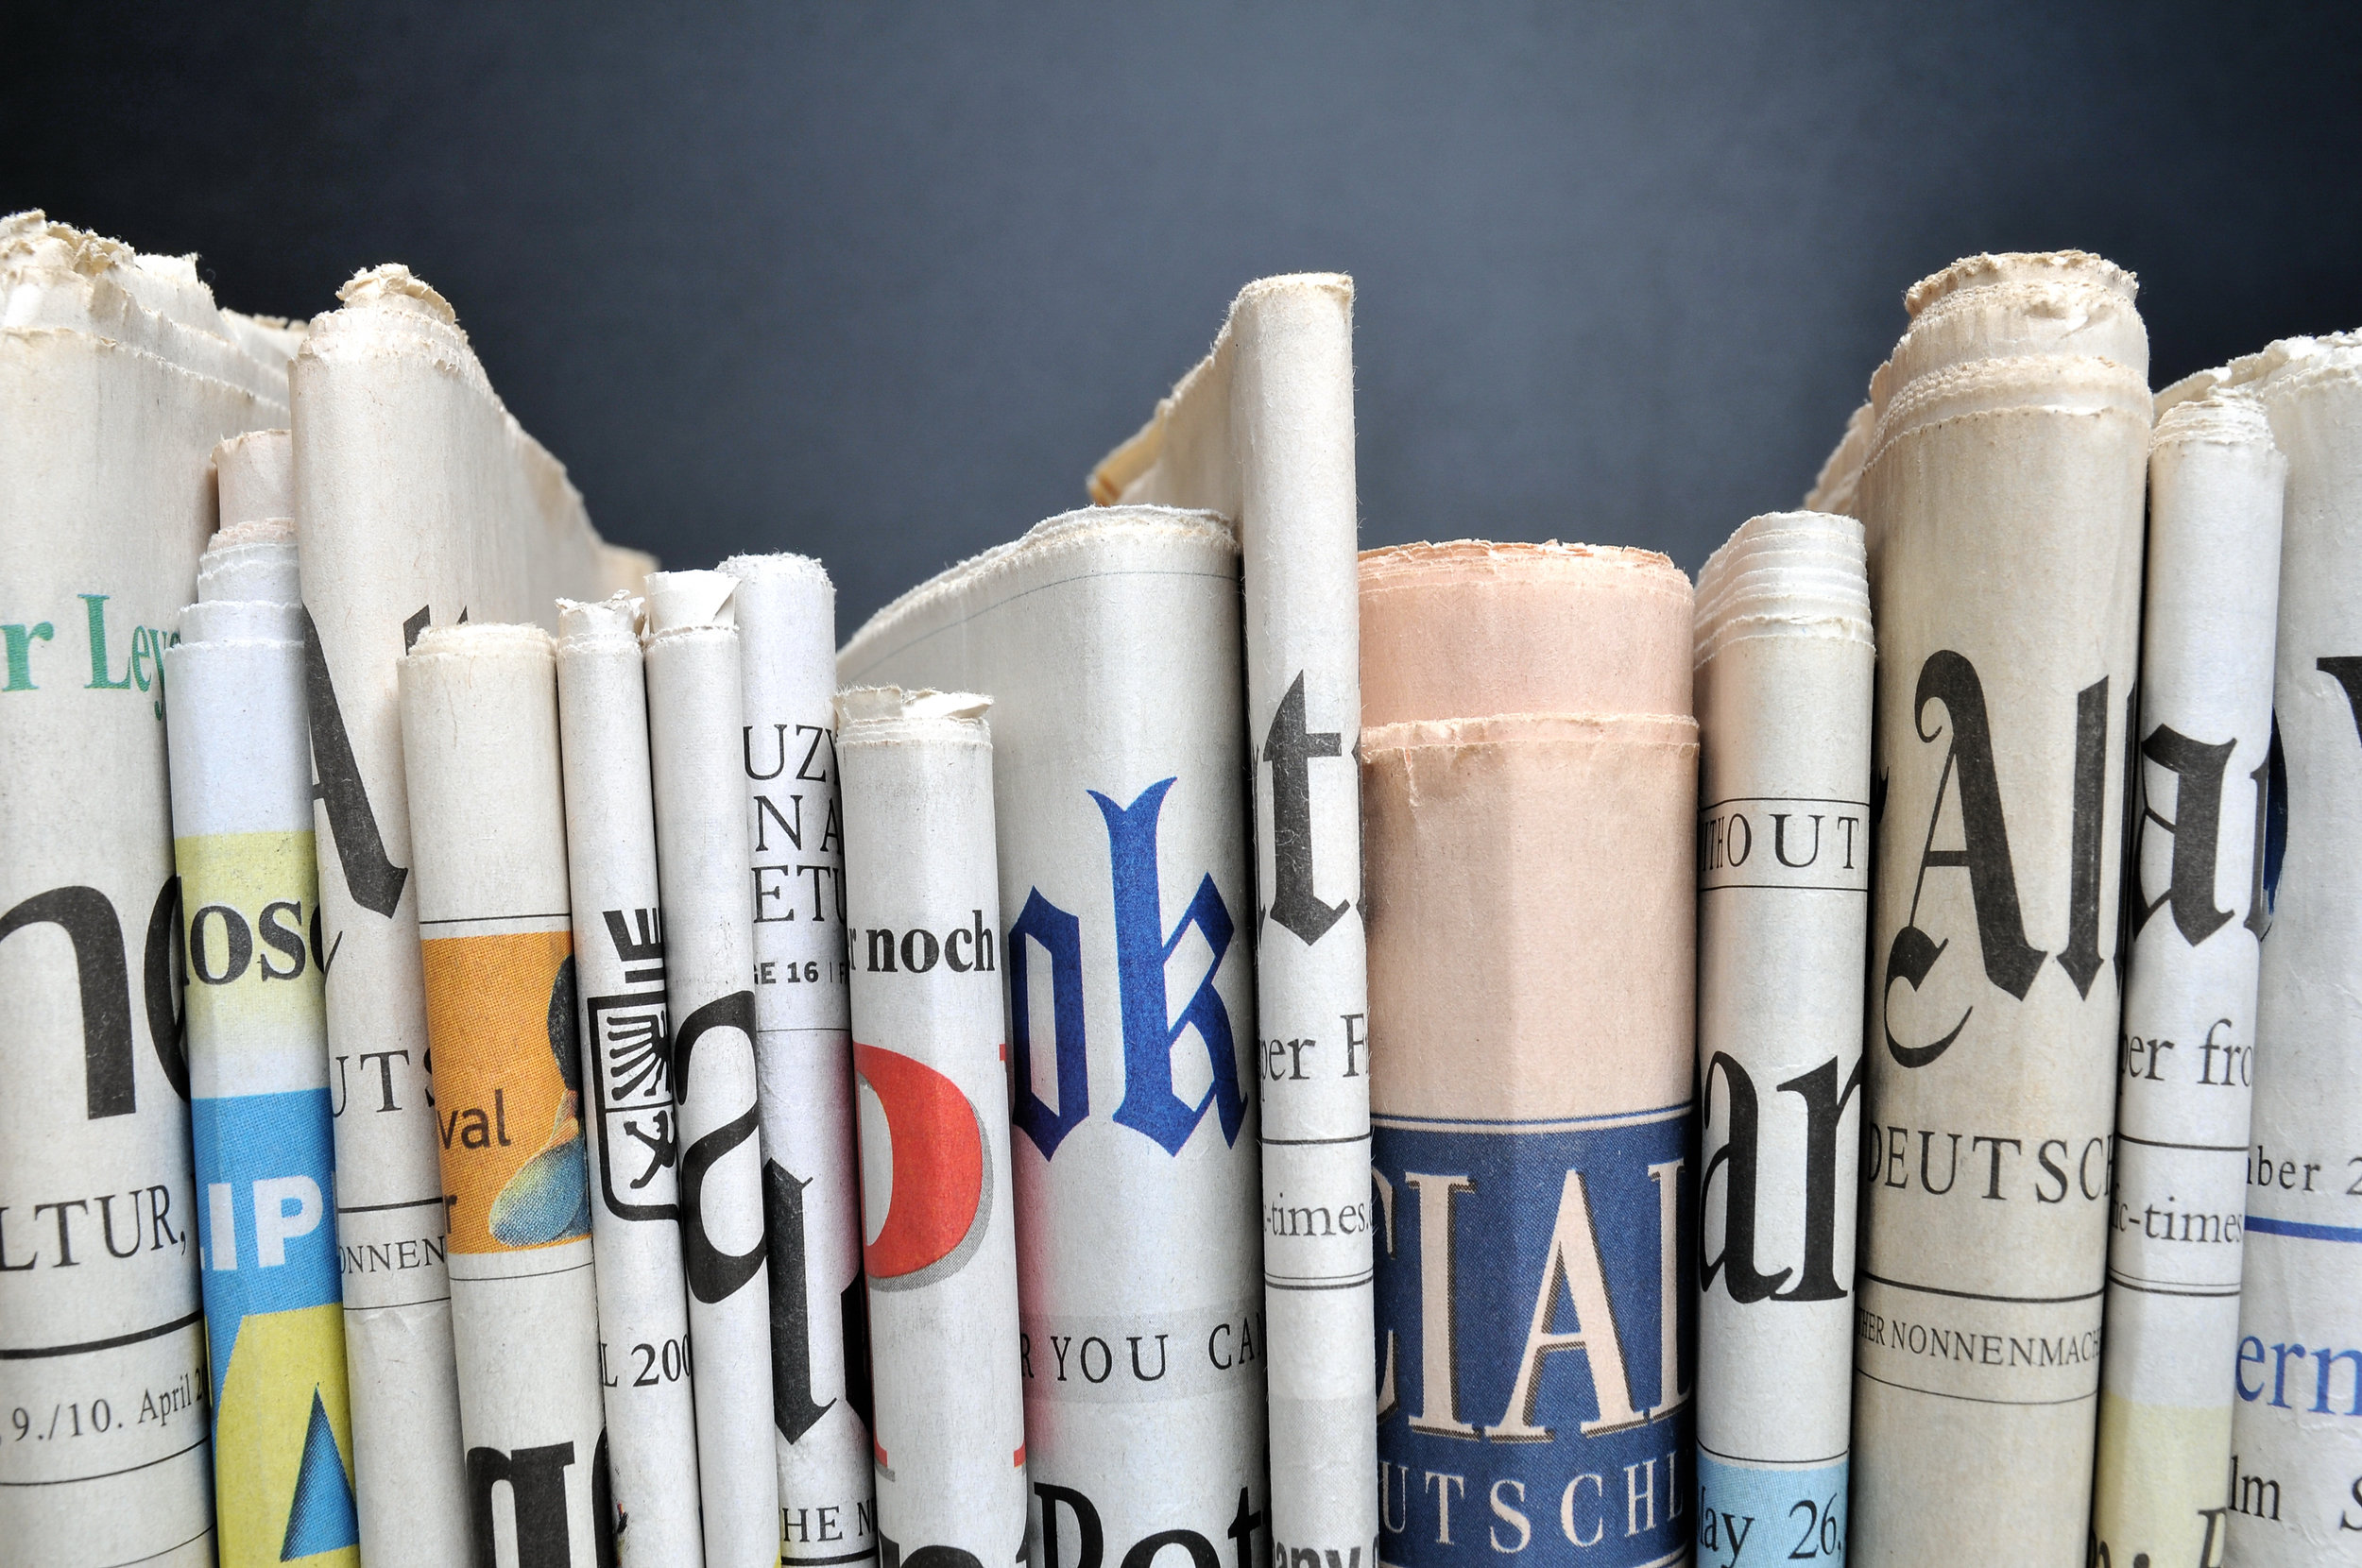 newspapers_shutterstock_241650187.jpg